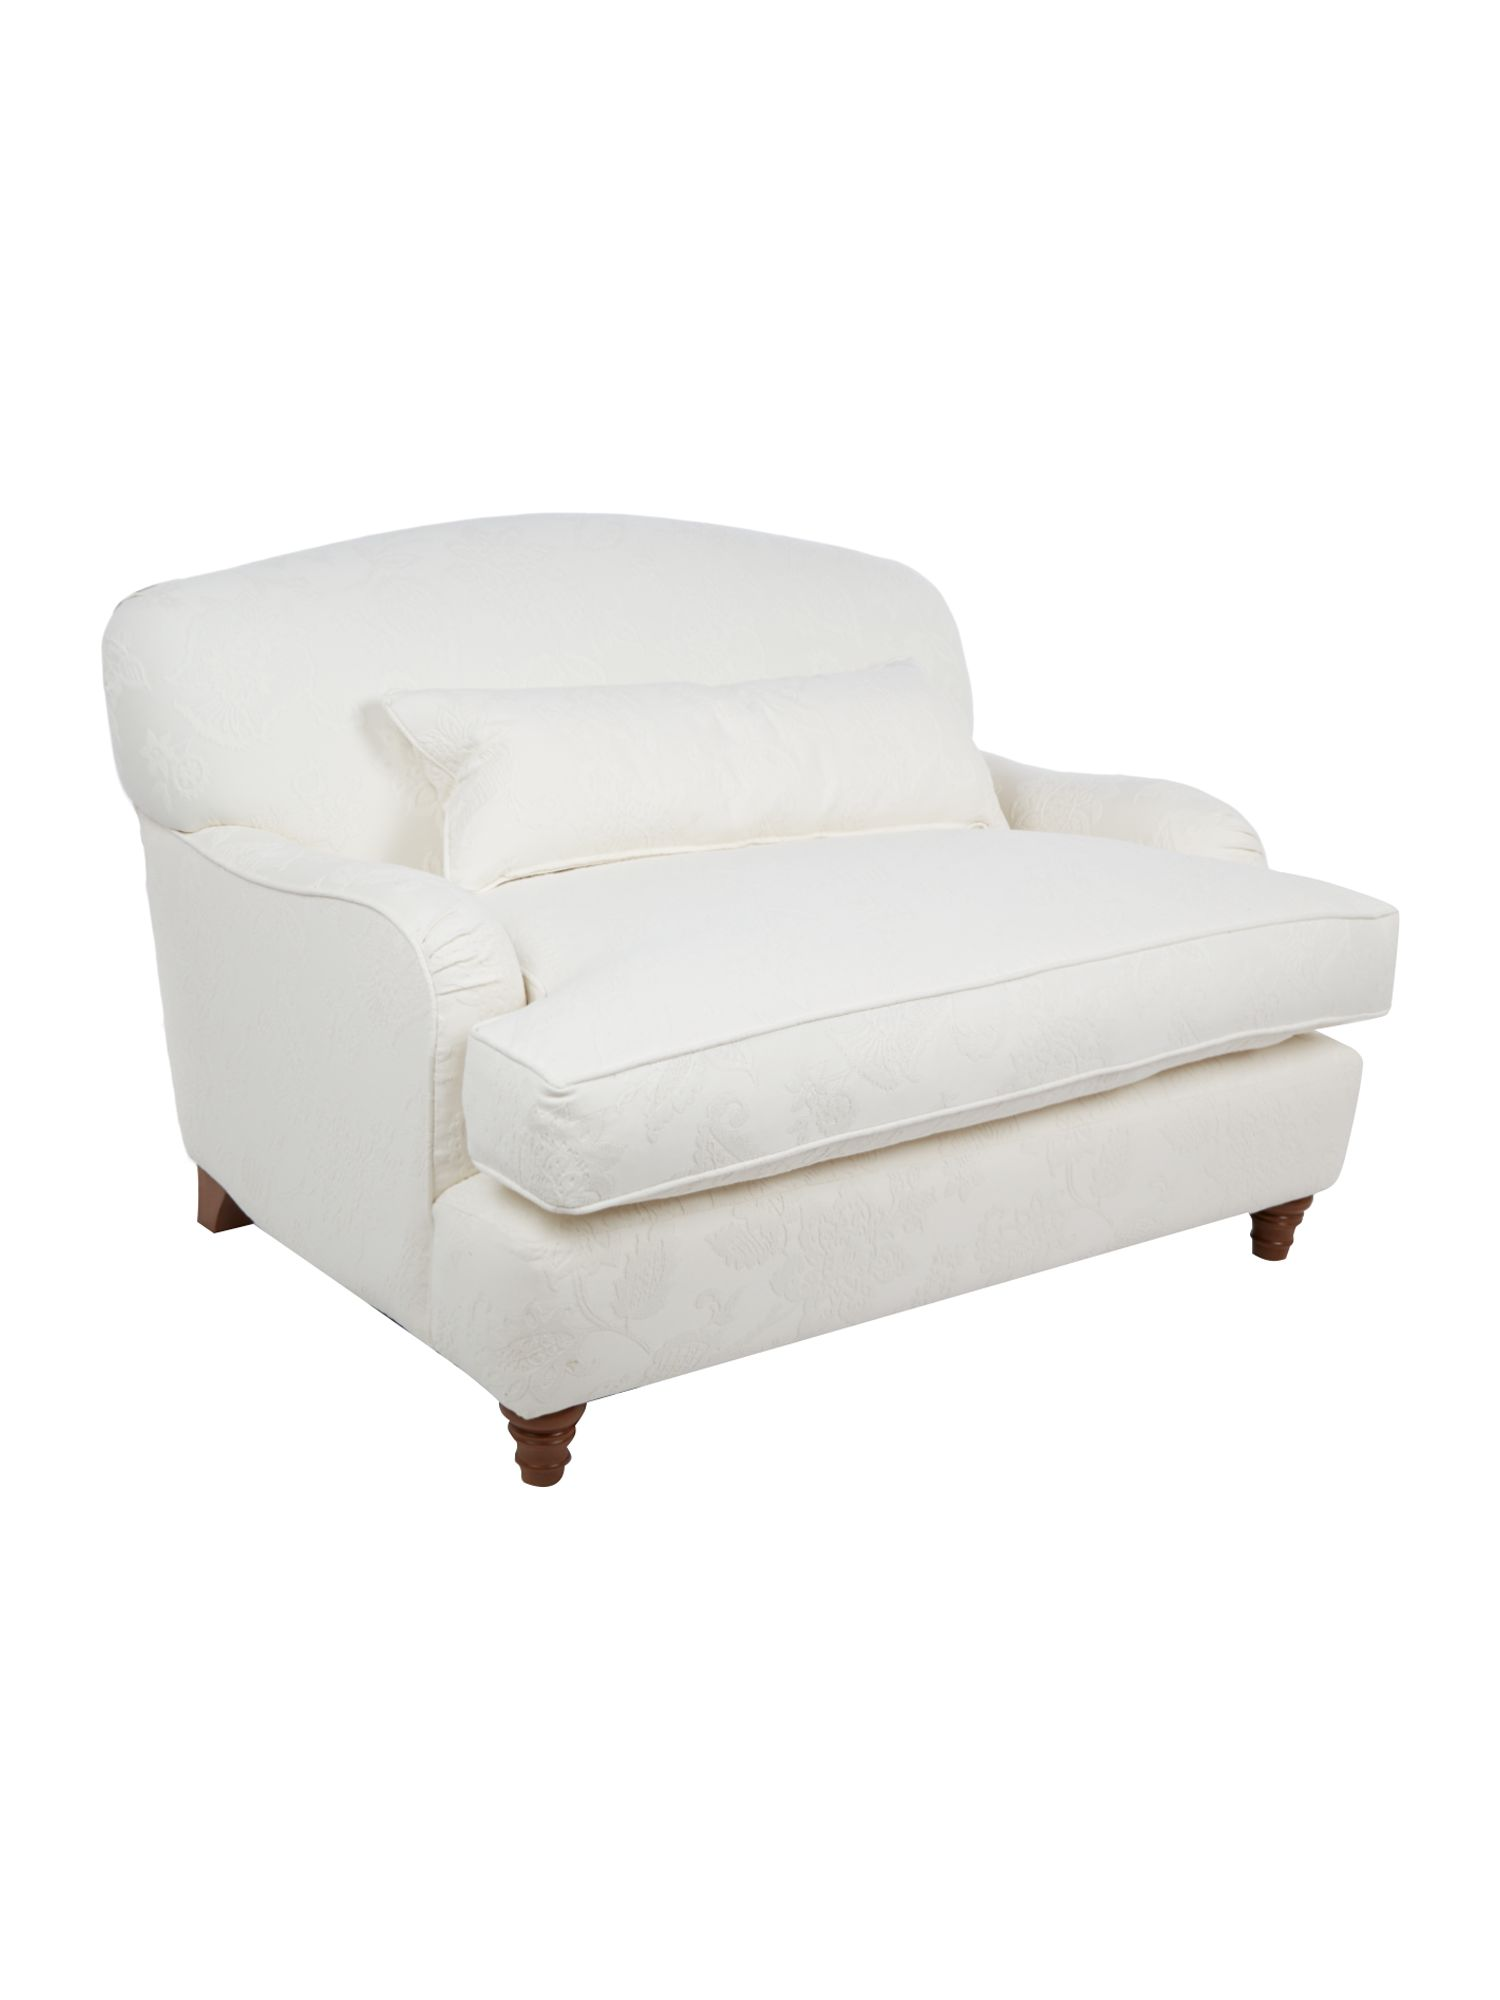 Shabby Chic Chelsea white foral textured cotton love seat